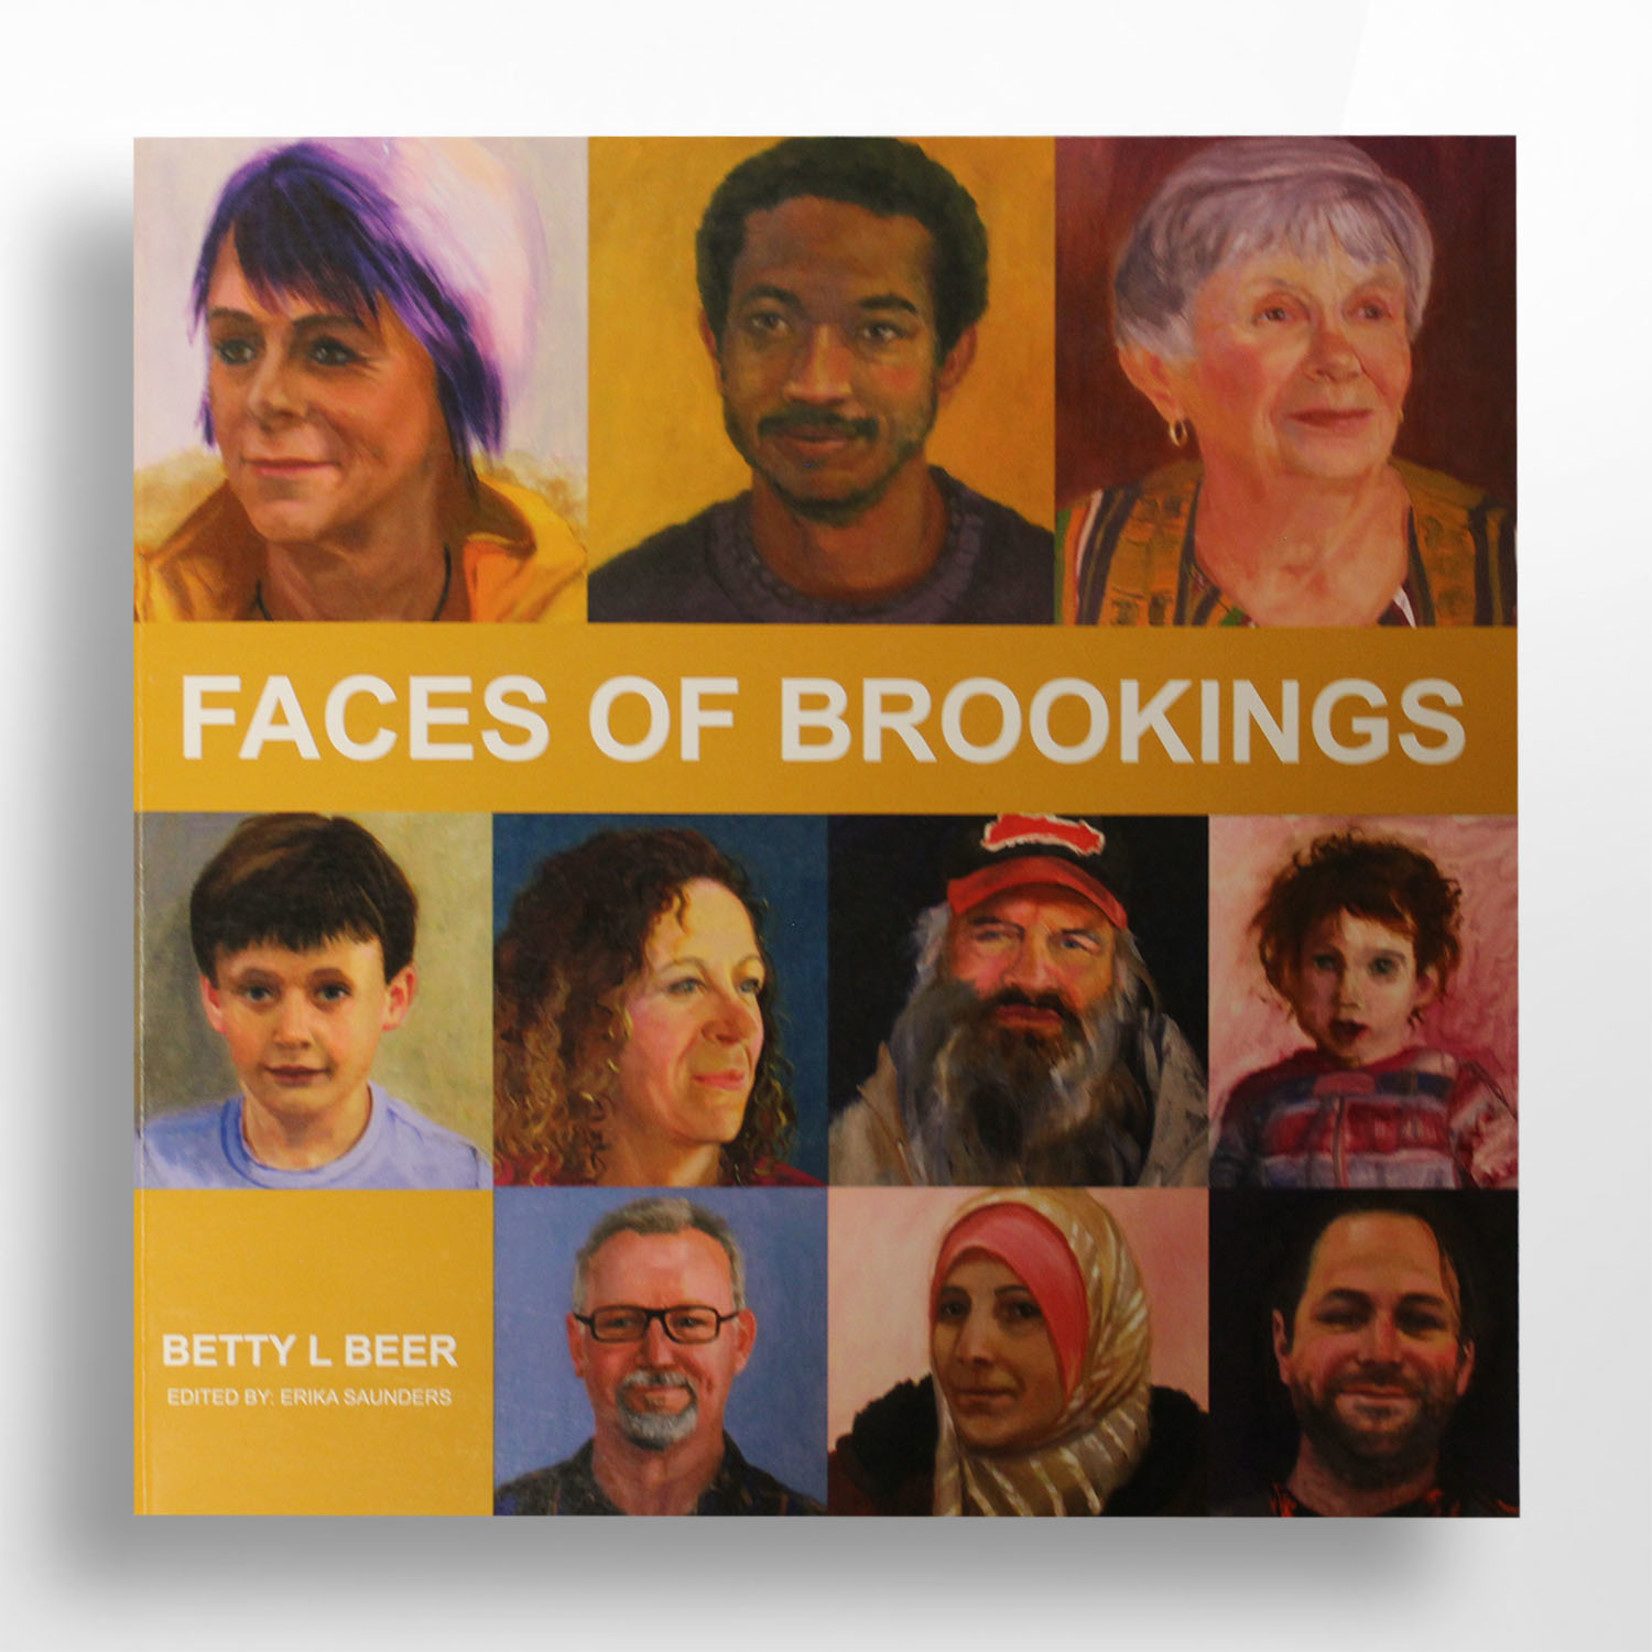 Betty L. Beer Faces of Brookings